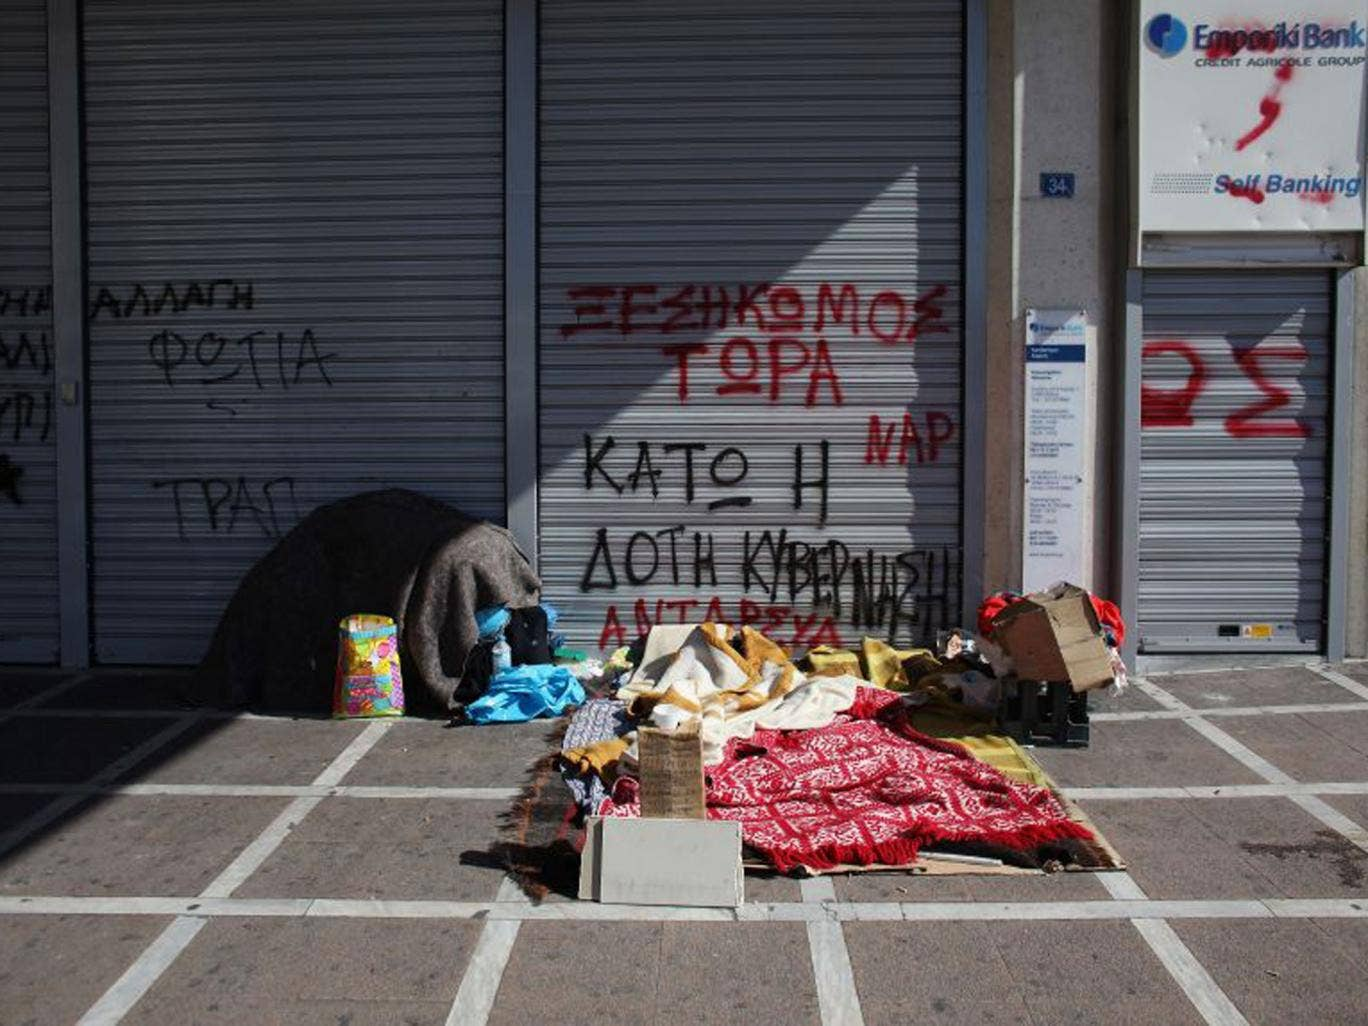 Soaring unemployment levels in crisis-stricken Greece have led to a worrying increase in homelessness in the past two years